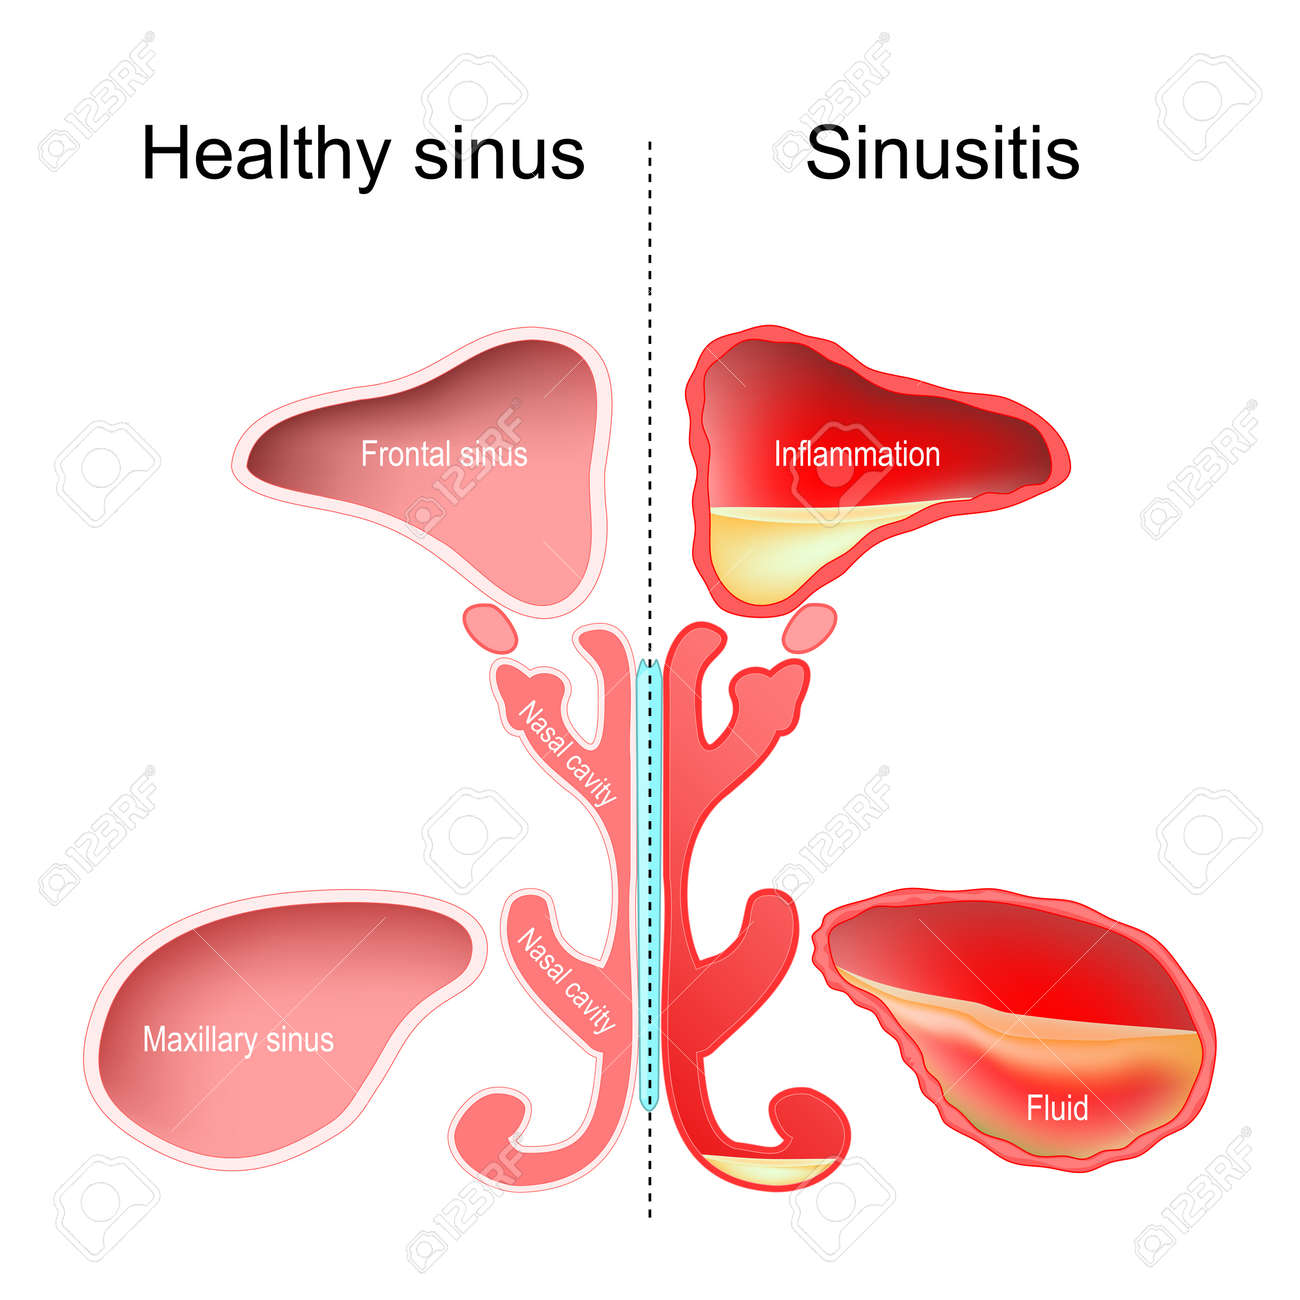 Sinusitis. Healthy nasal sinus and sinus with infection (inflammation and fluid). vector illustration - 170050008